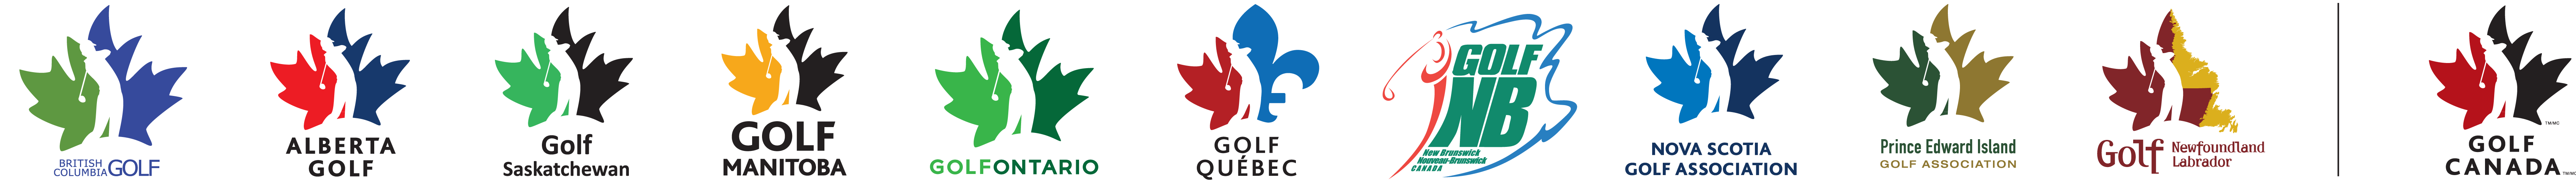 Join Canada's Largest Golf Community